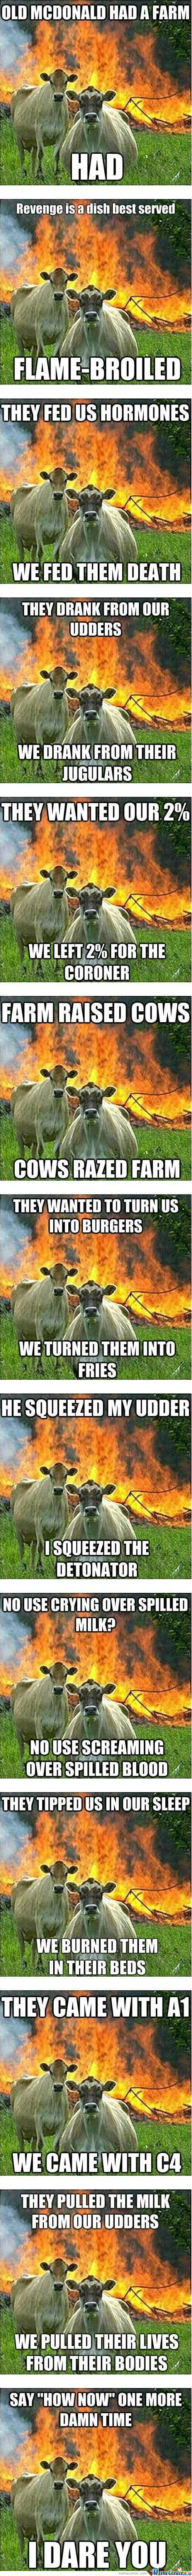 Evil Cows Competition